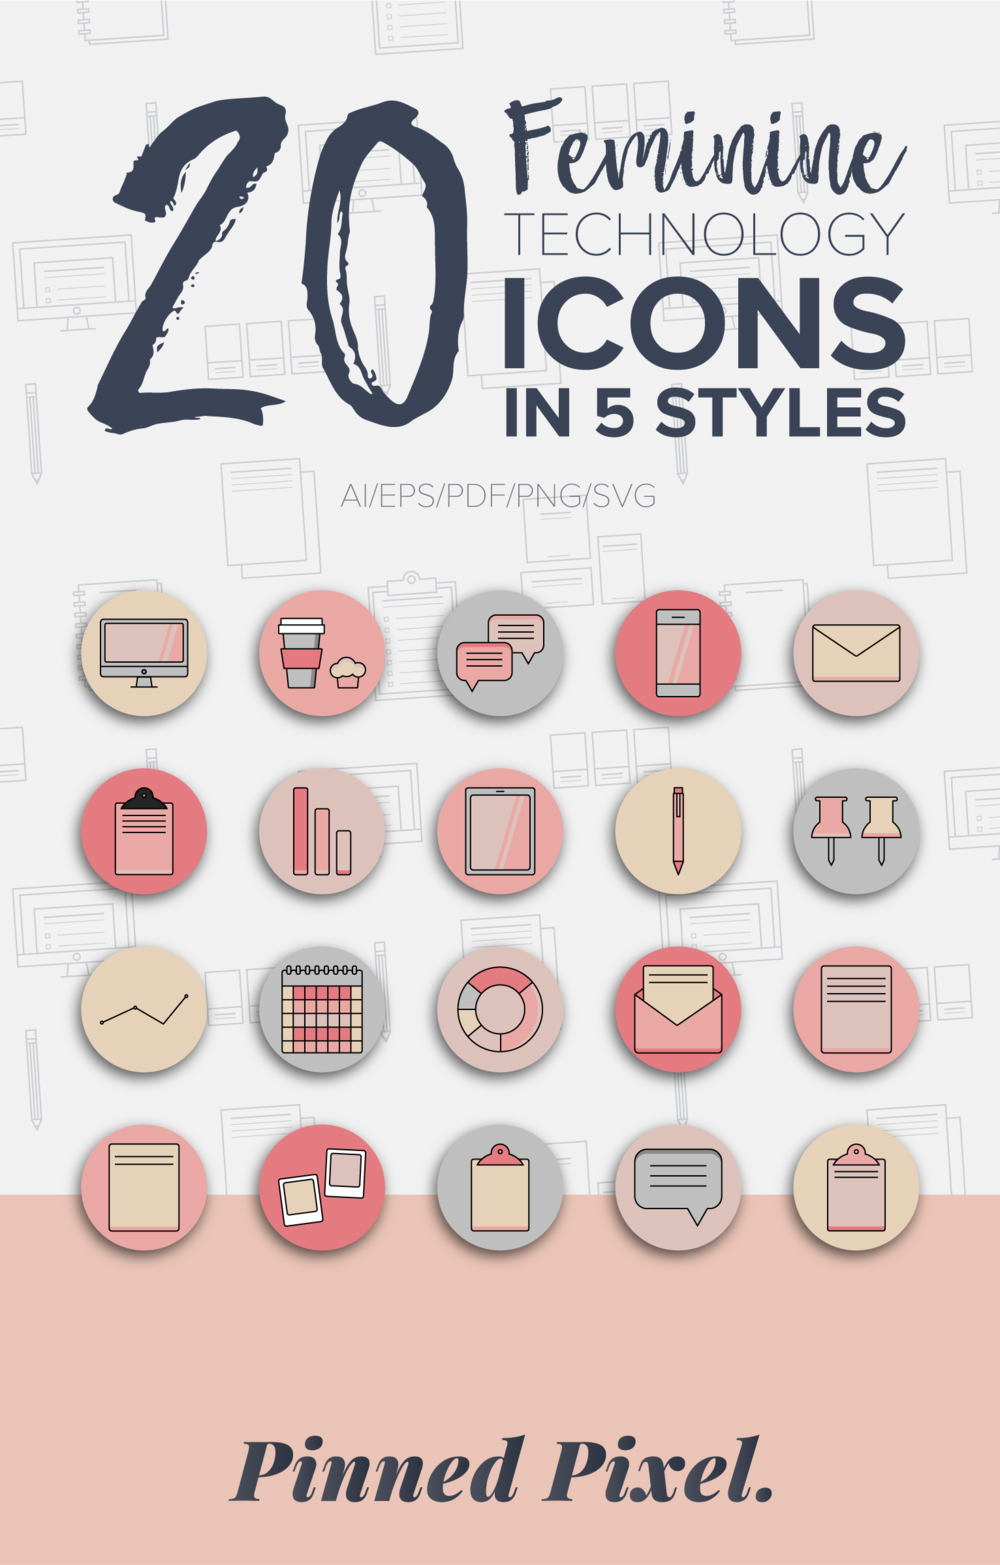 Feminine Technology Icons - Pinned Pixel